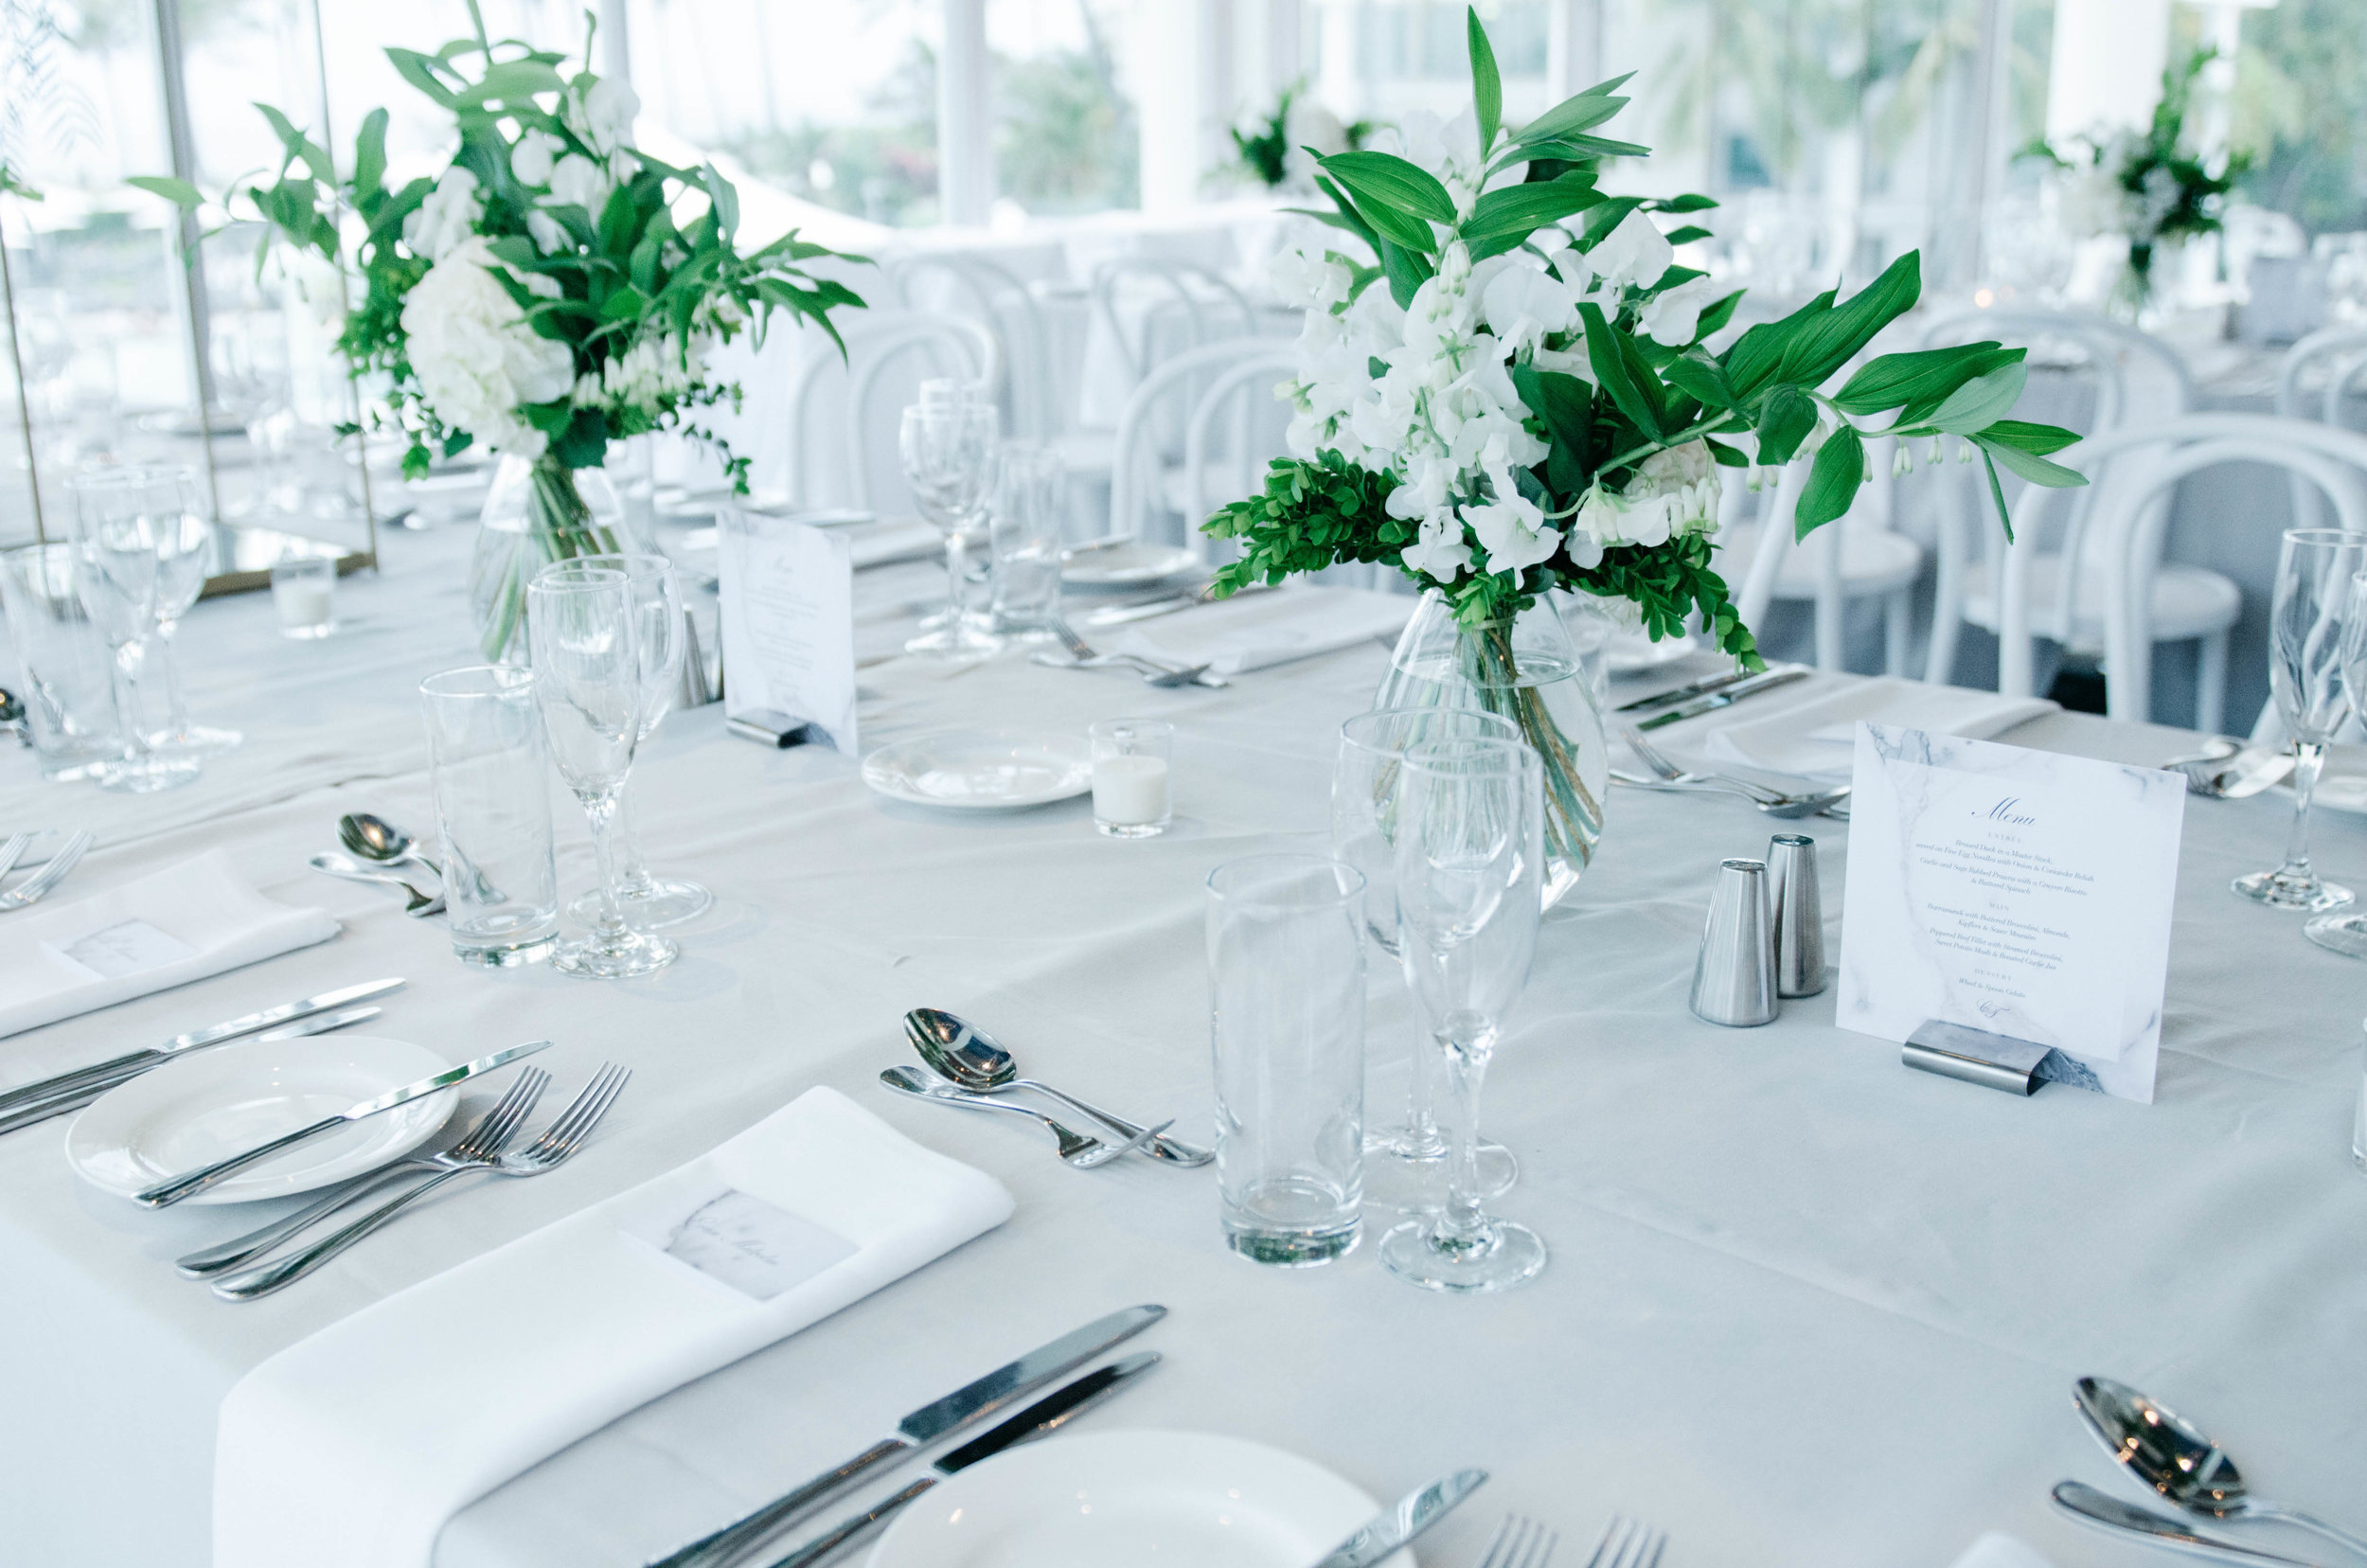 Hampton Event Hire - Wedding & Event Hire | www.hamptoneventhire.com | Sheraton Gold Coast Wedding | Styled by The Events Lounge